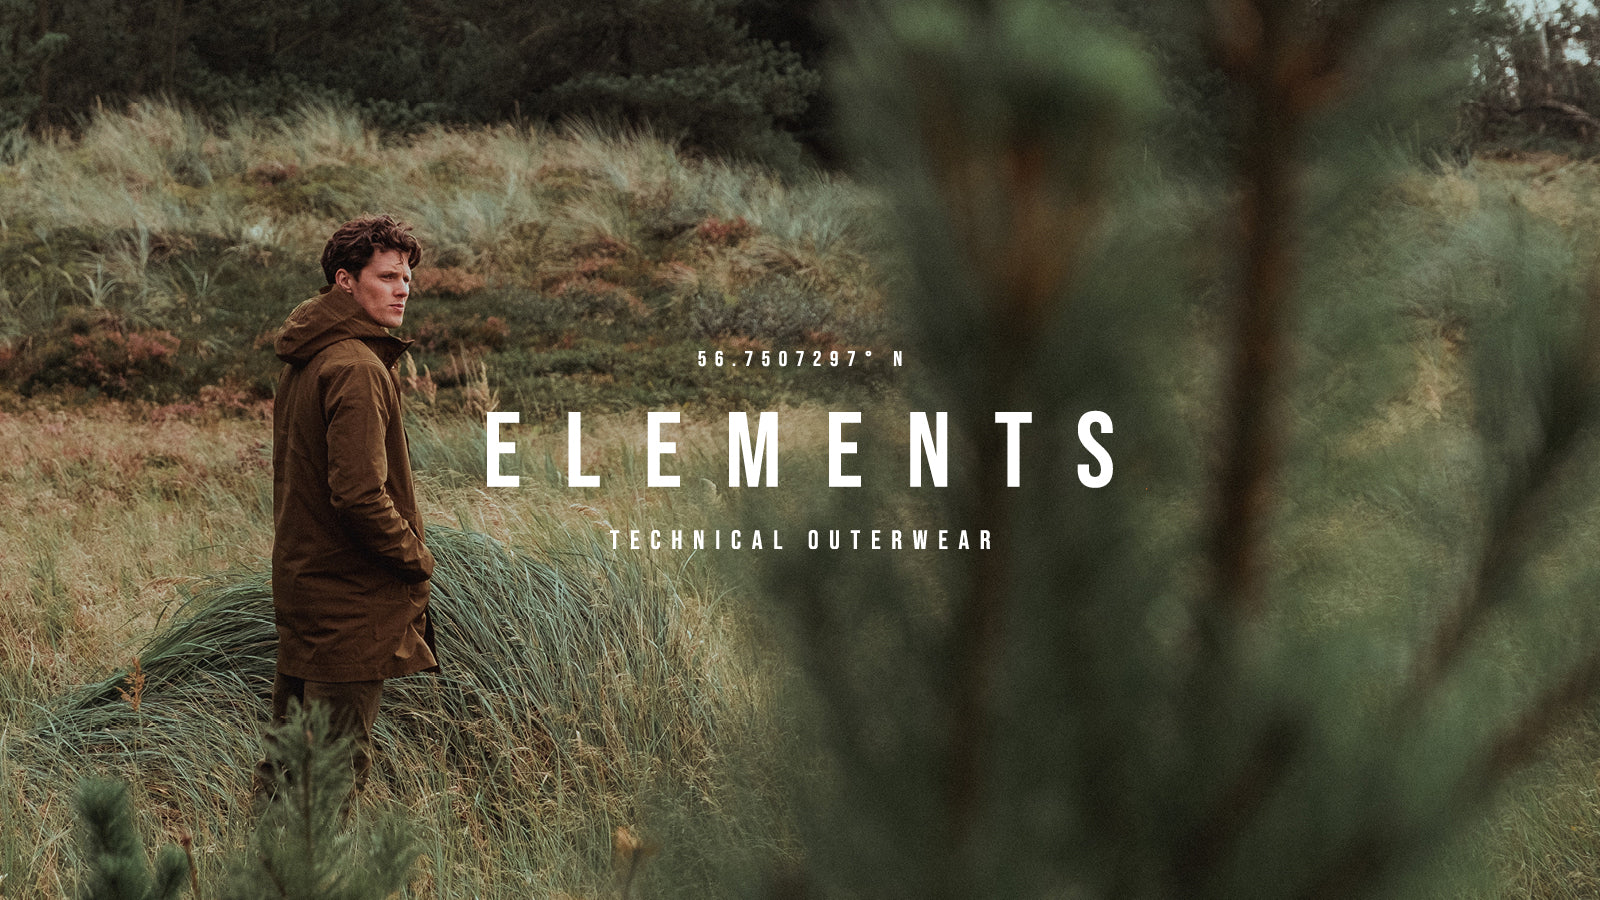 ELEMENTS - Technical Outerwear